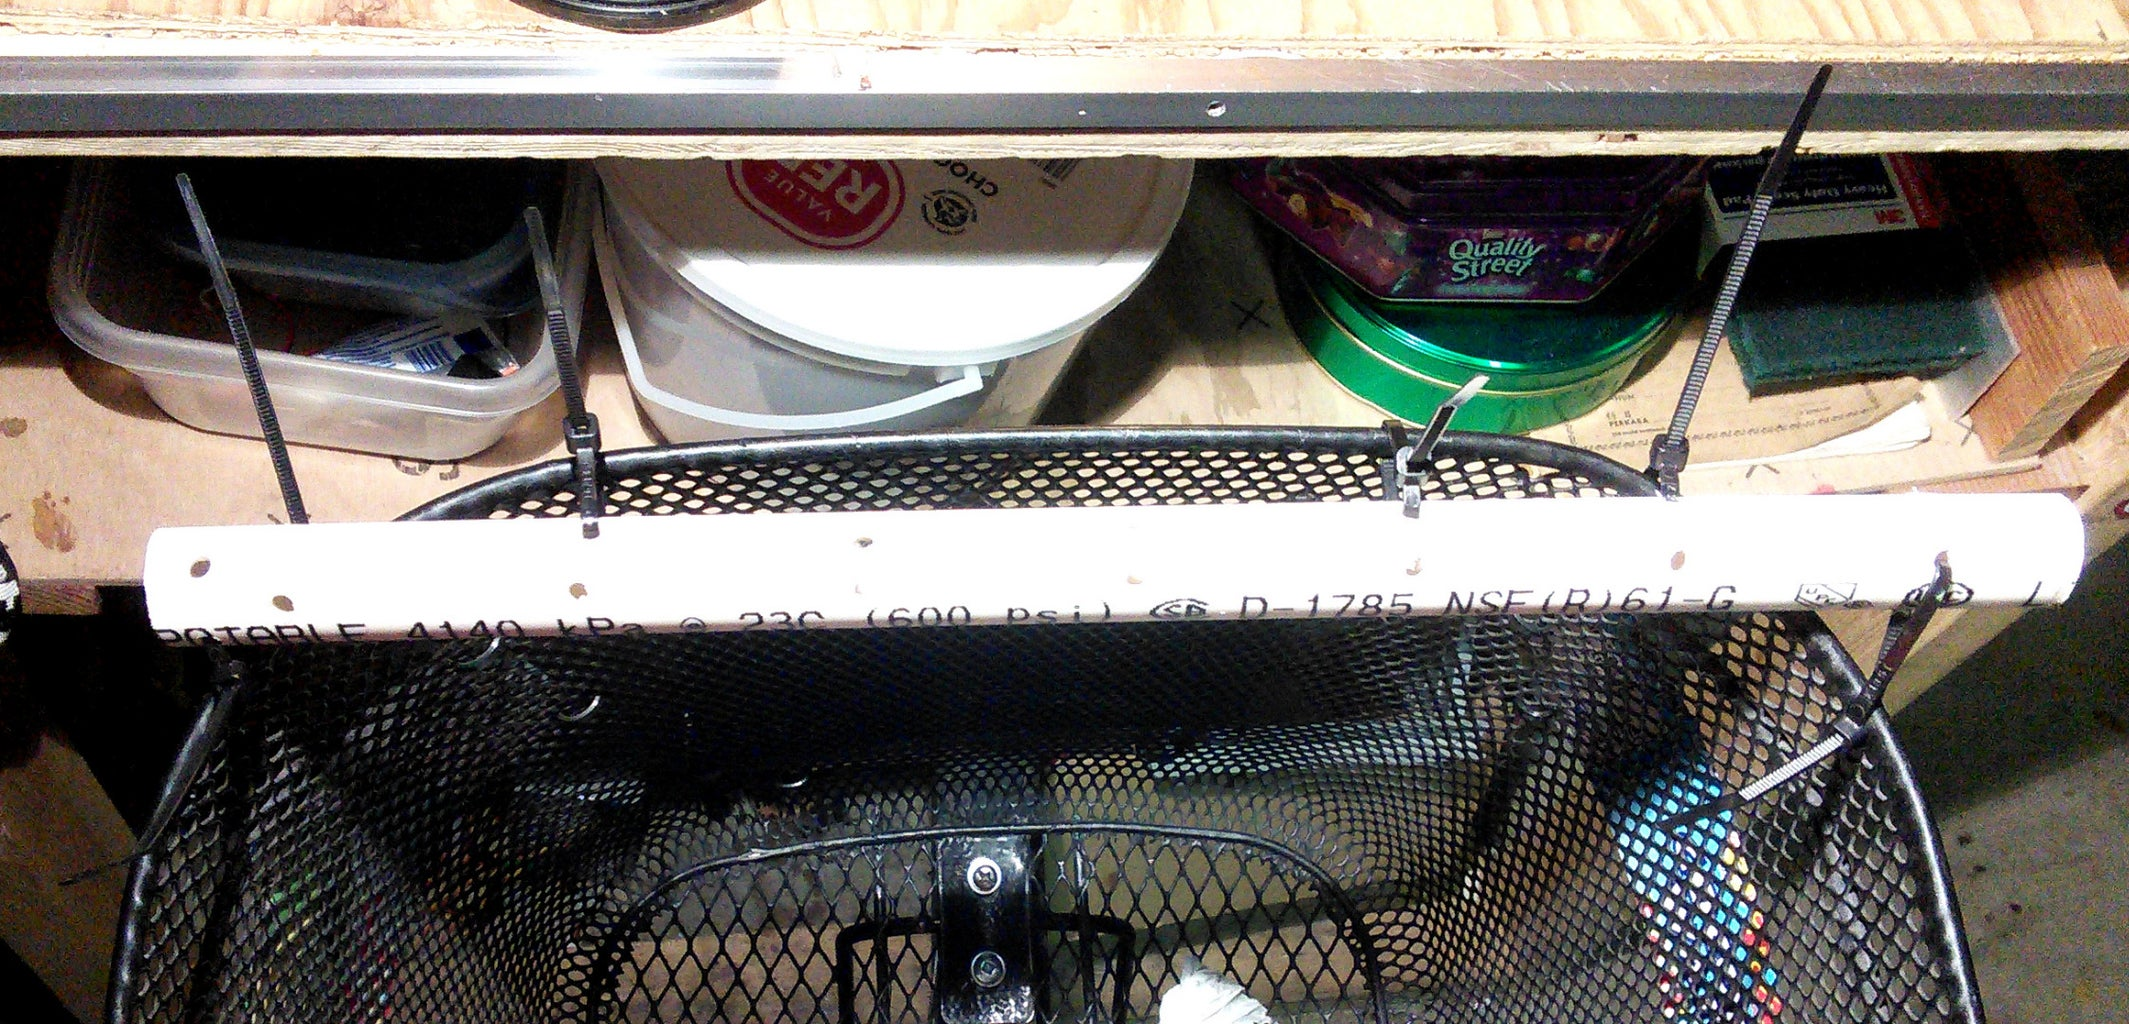 Cable Tie Pipe to Basket